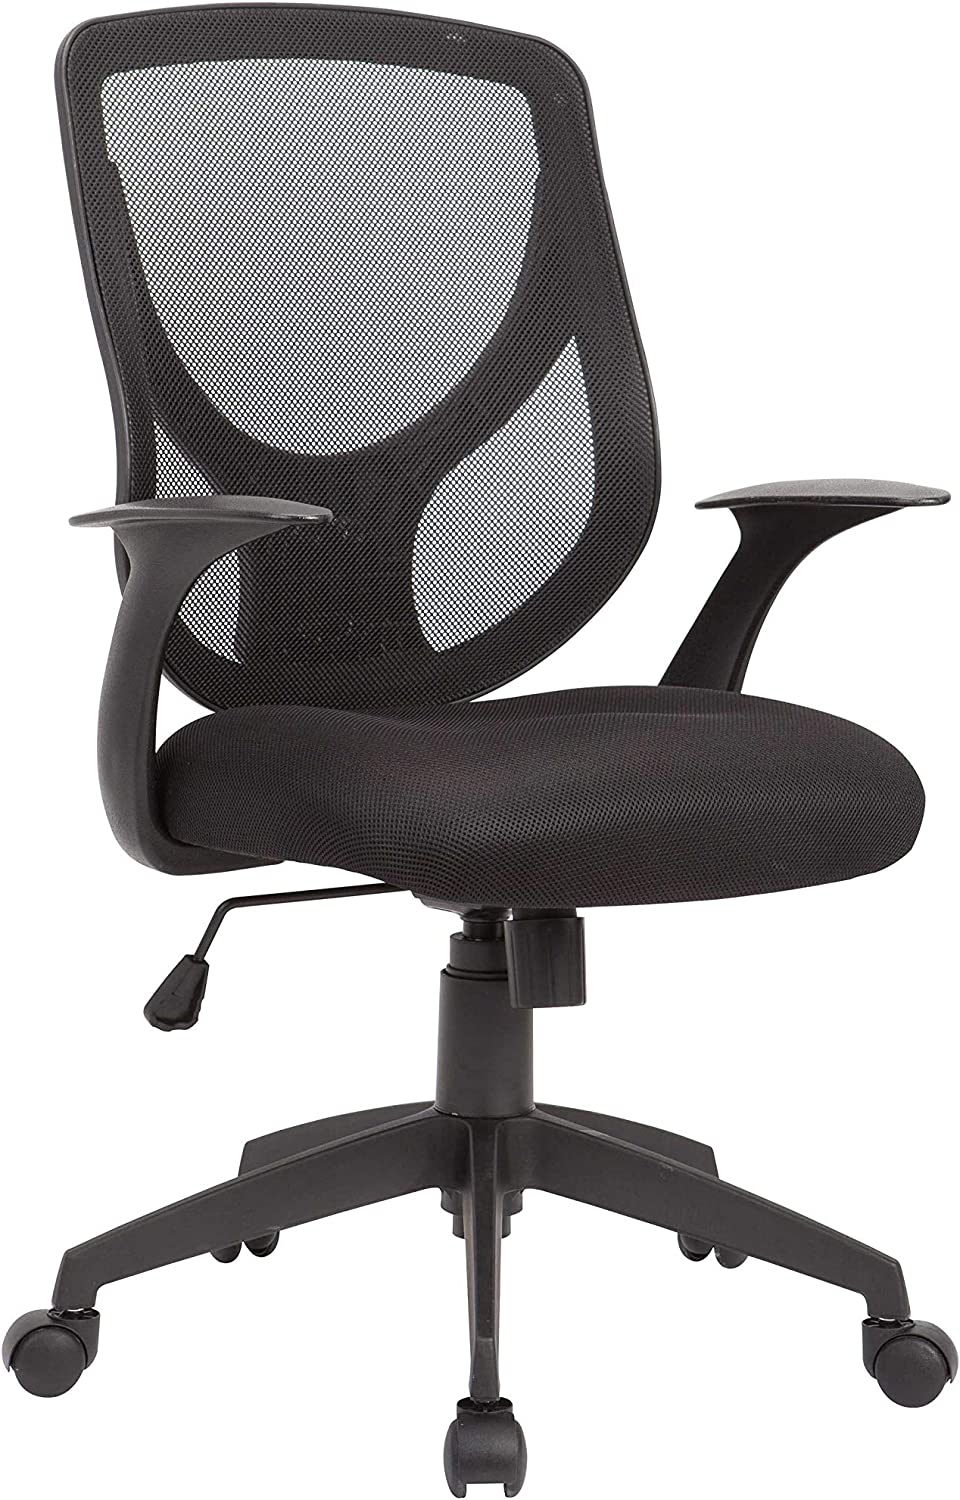 Home Roots Furniture Adjustable Swivel Office Chair with Mesh Seat and Back - Black